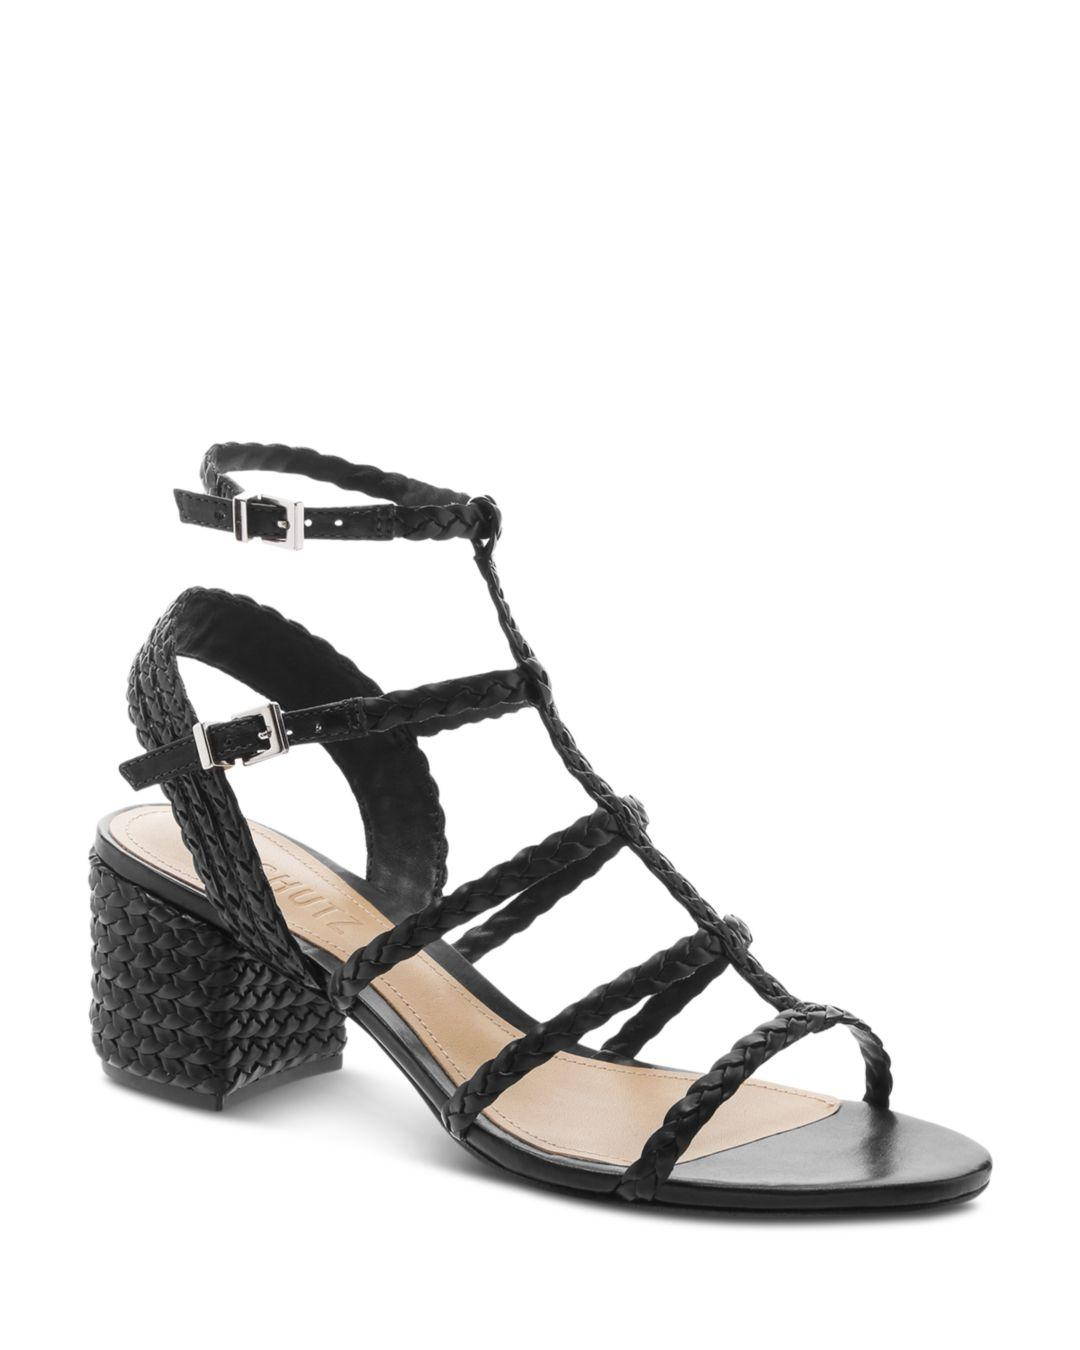 ba5d17be1349 Lyst - Schutz Rosalia Braided Leather Caged Sandals in Black - Save 3%